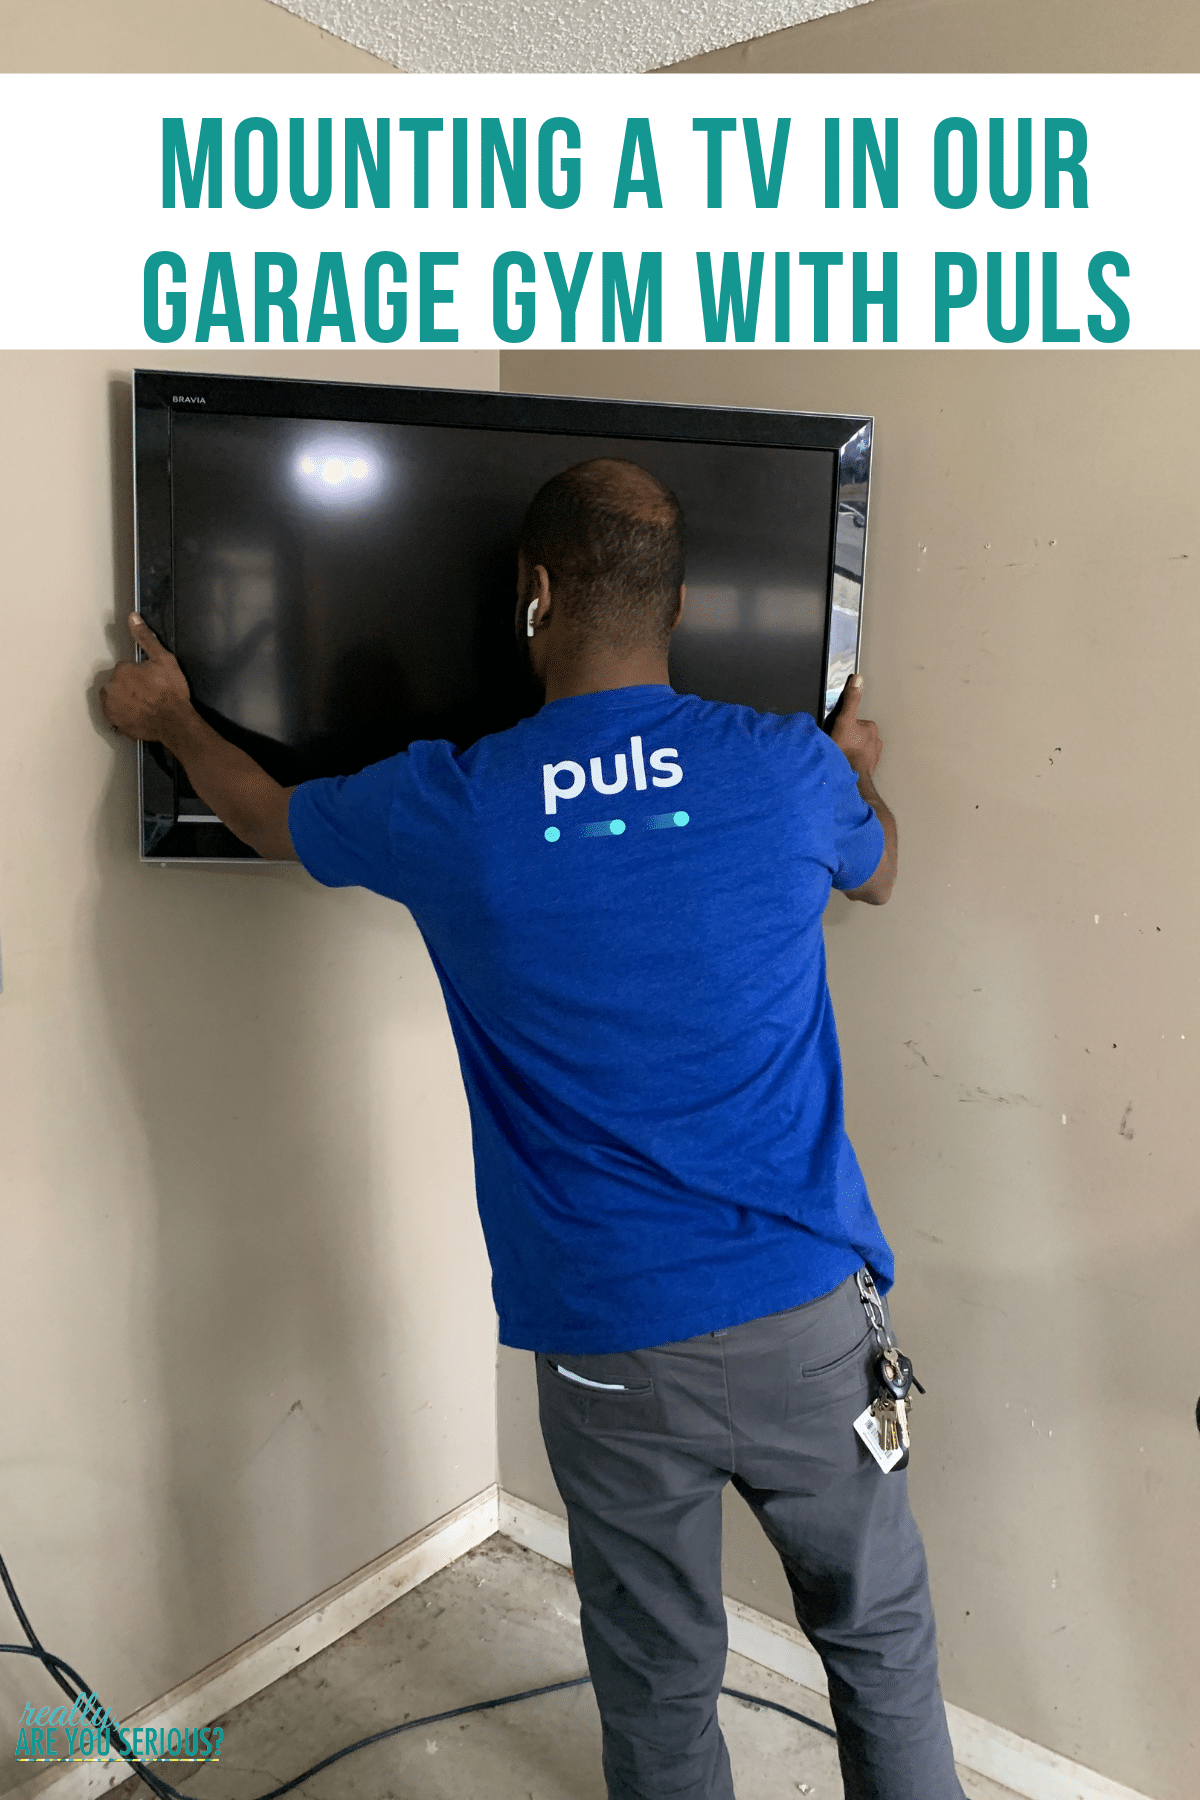 Mounting a tv in our garage gym with puls